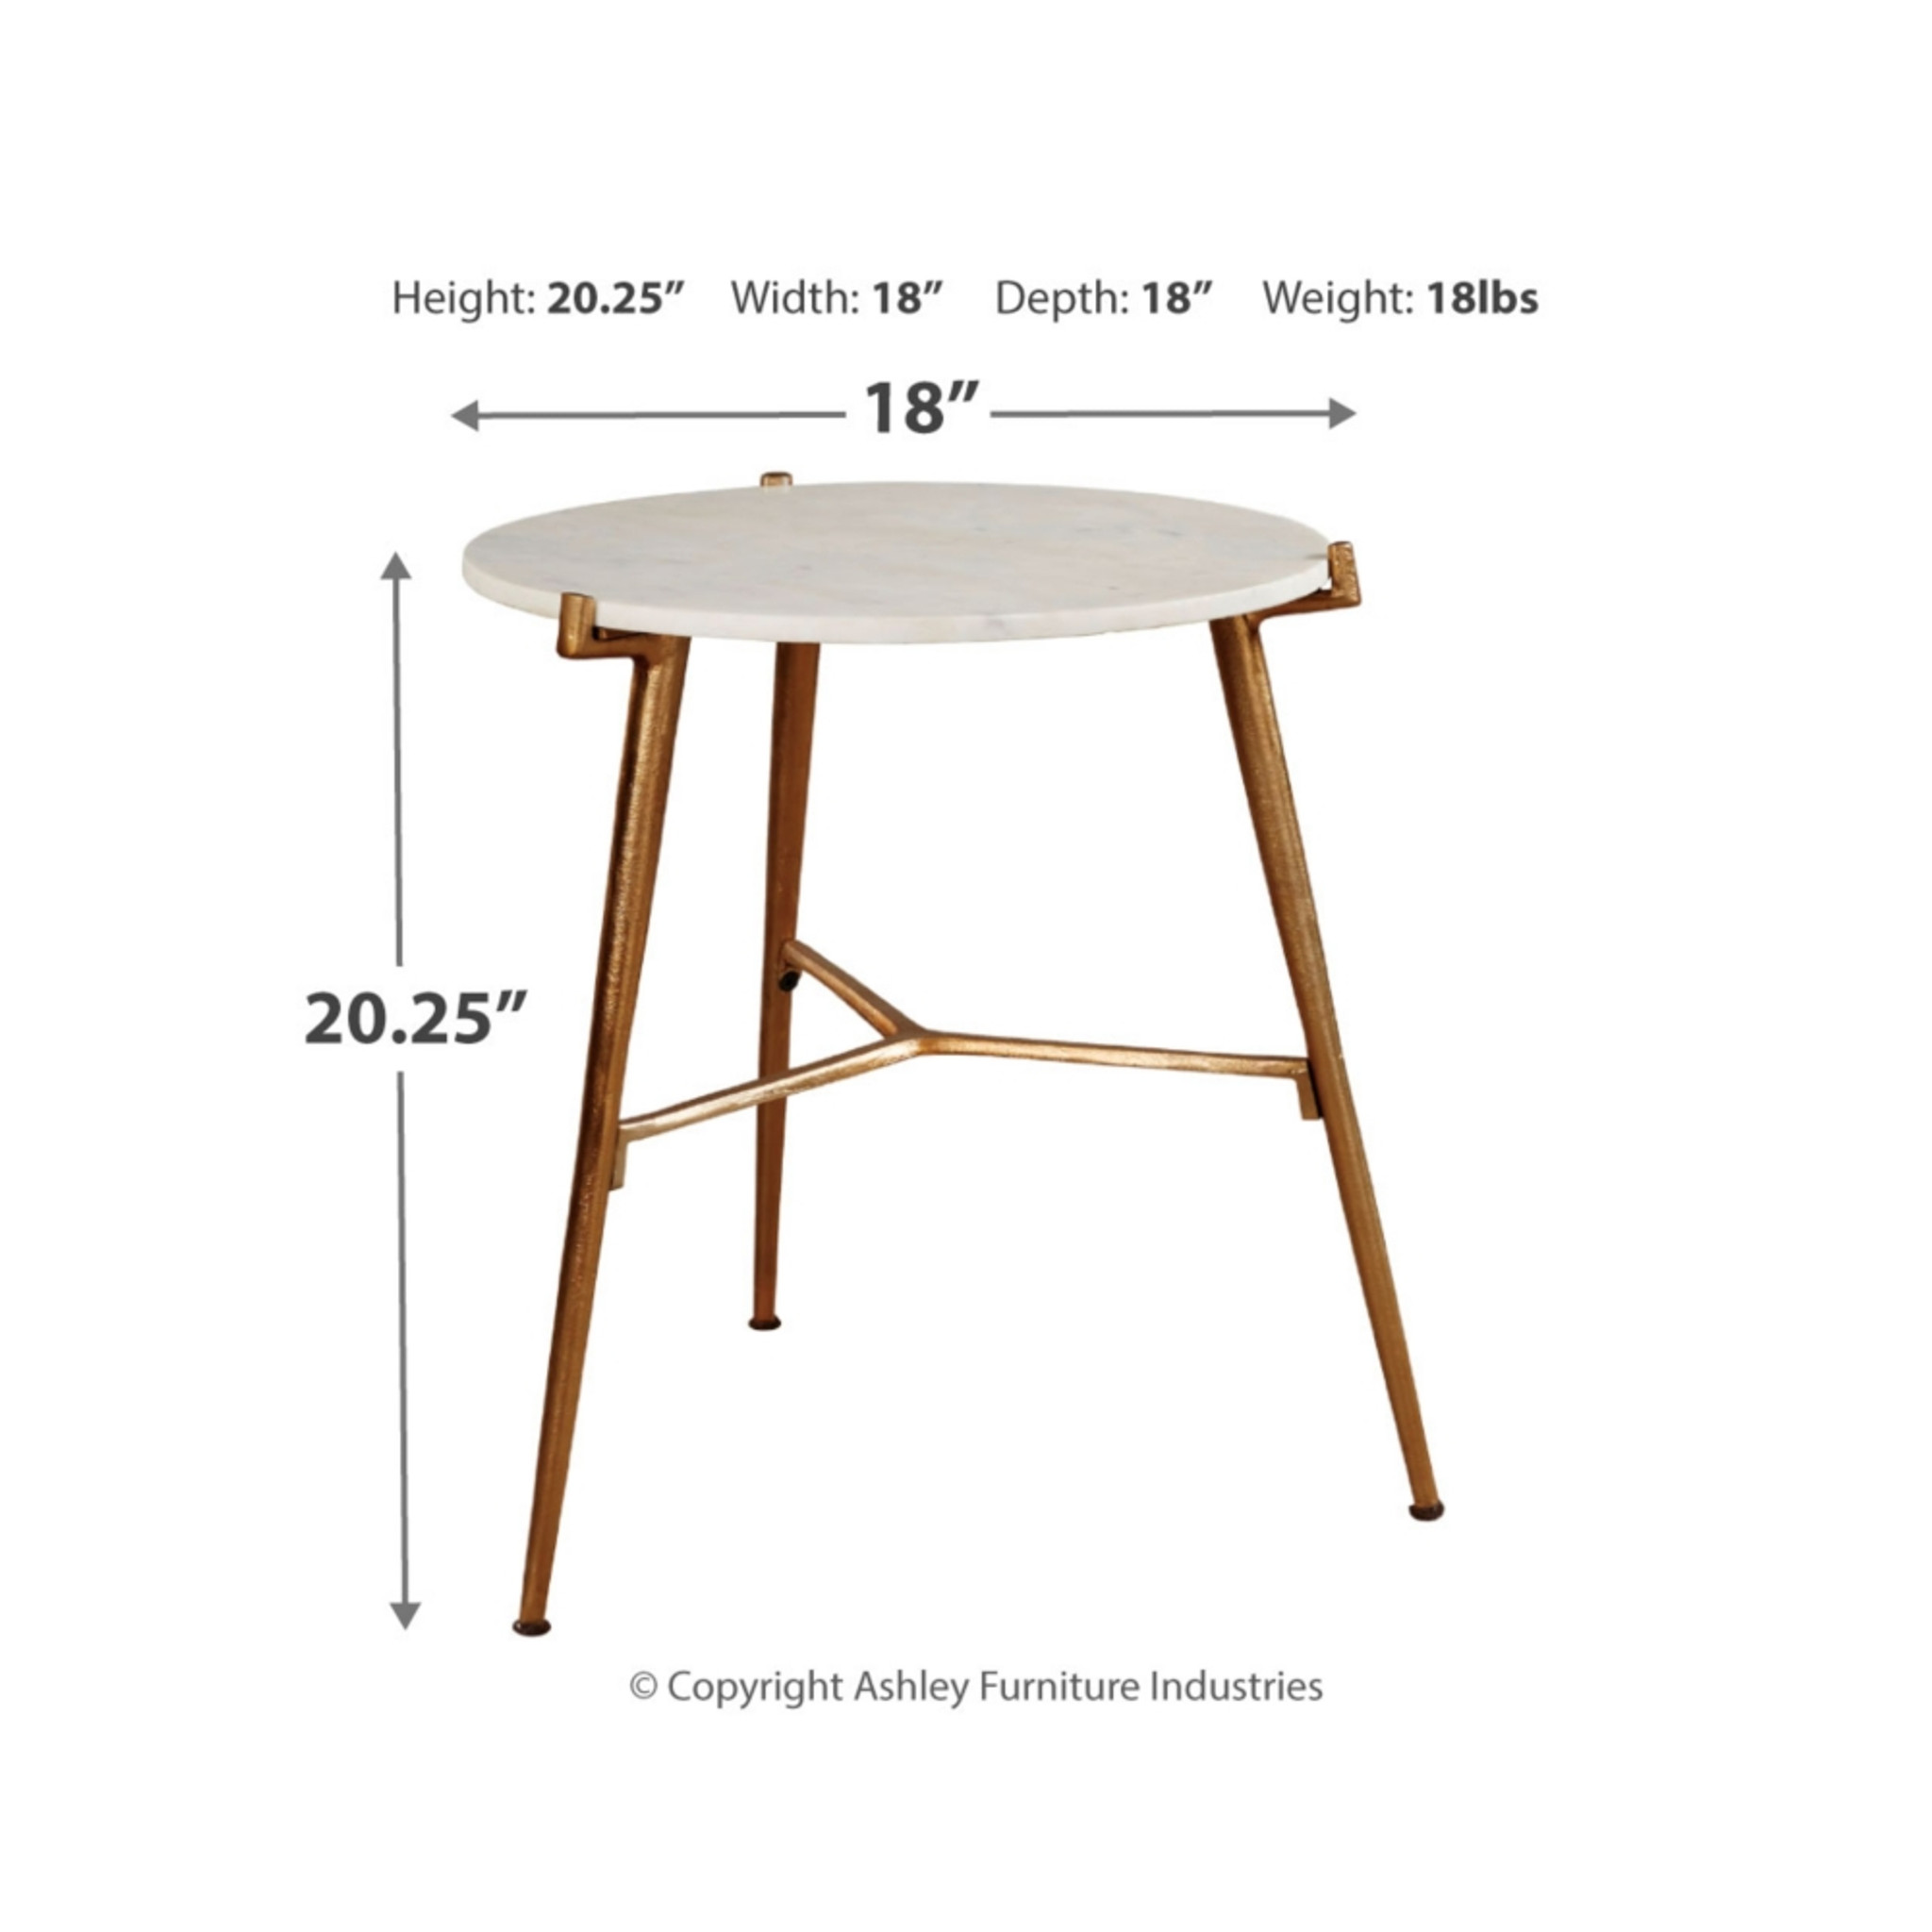 A4000004 Chadton Accent Table Collection By Ashley Furniture